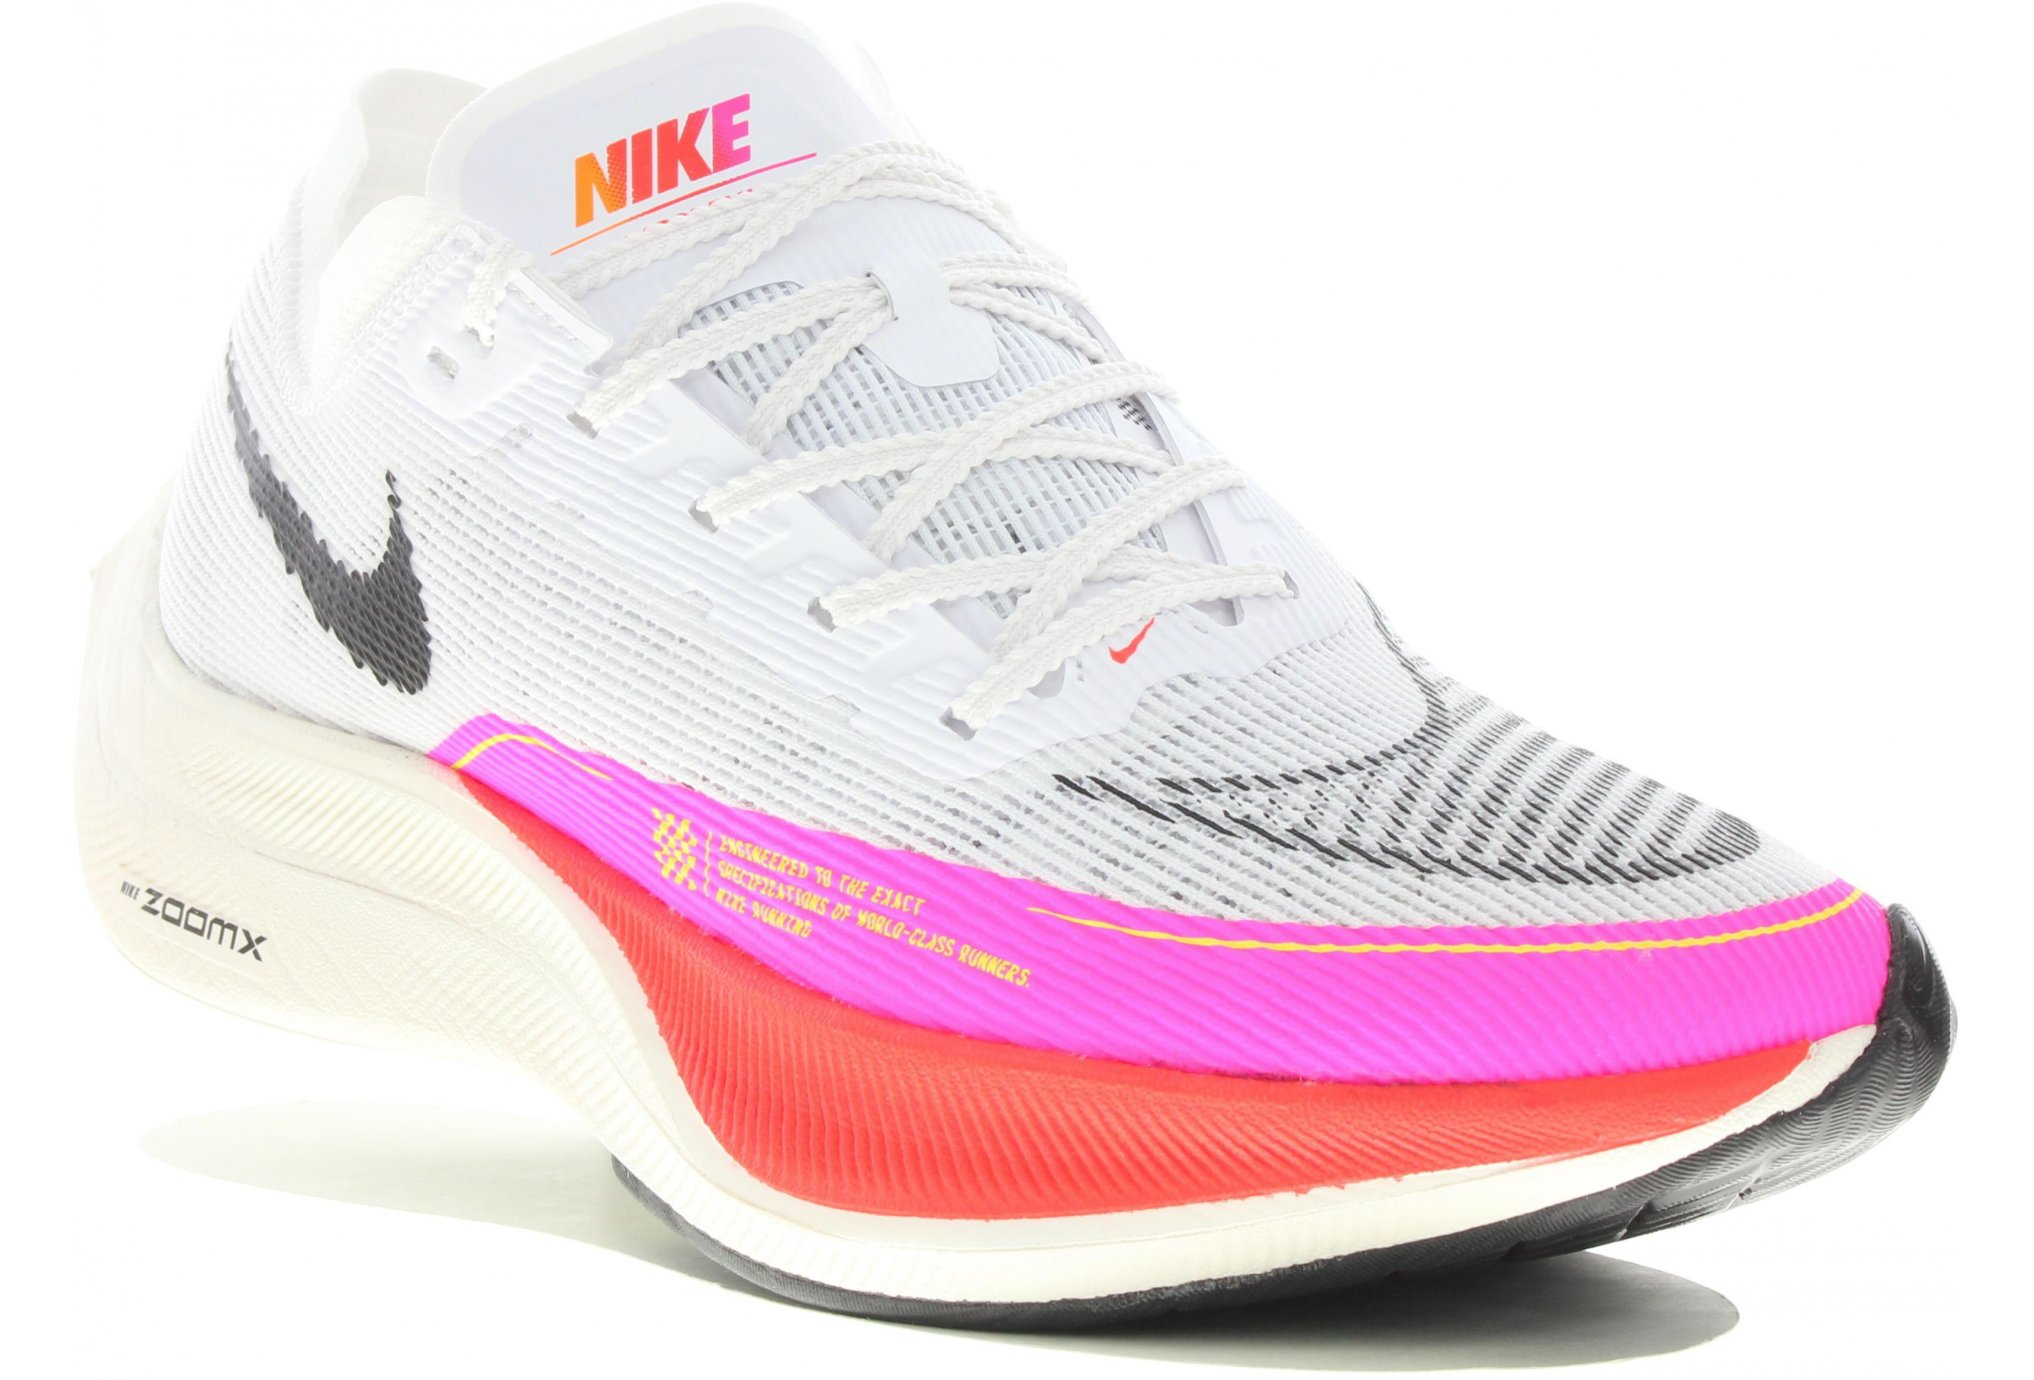 Nike ZoomX Vaporfly Next% 2 Rawdacious M Chaussures homme